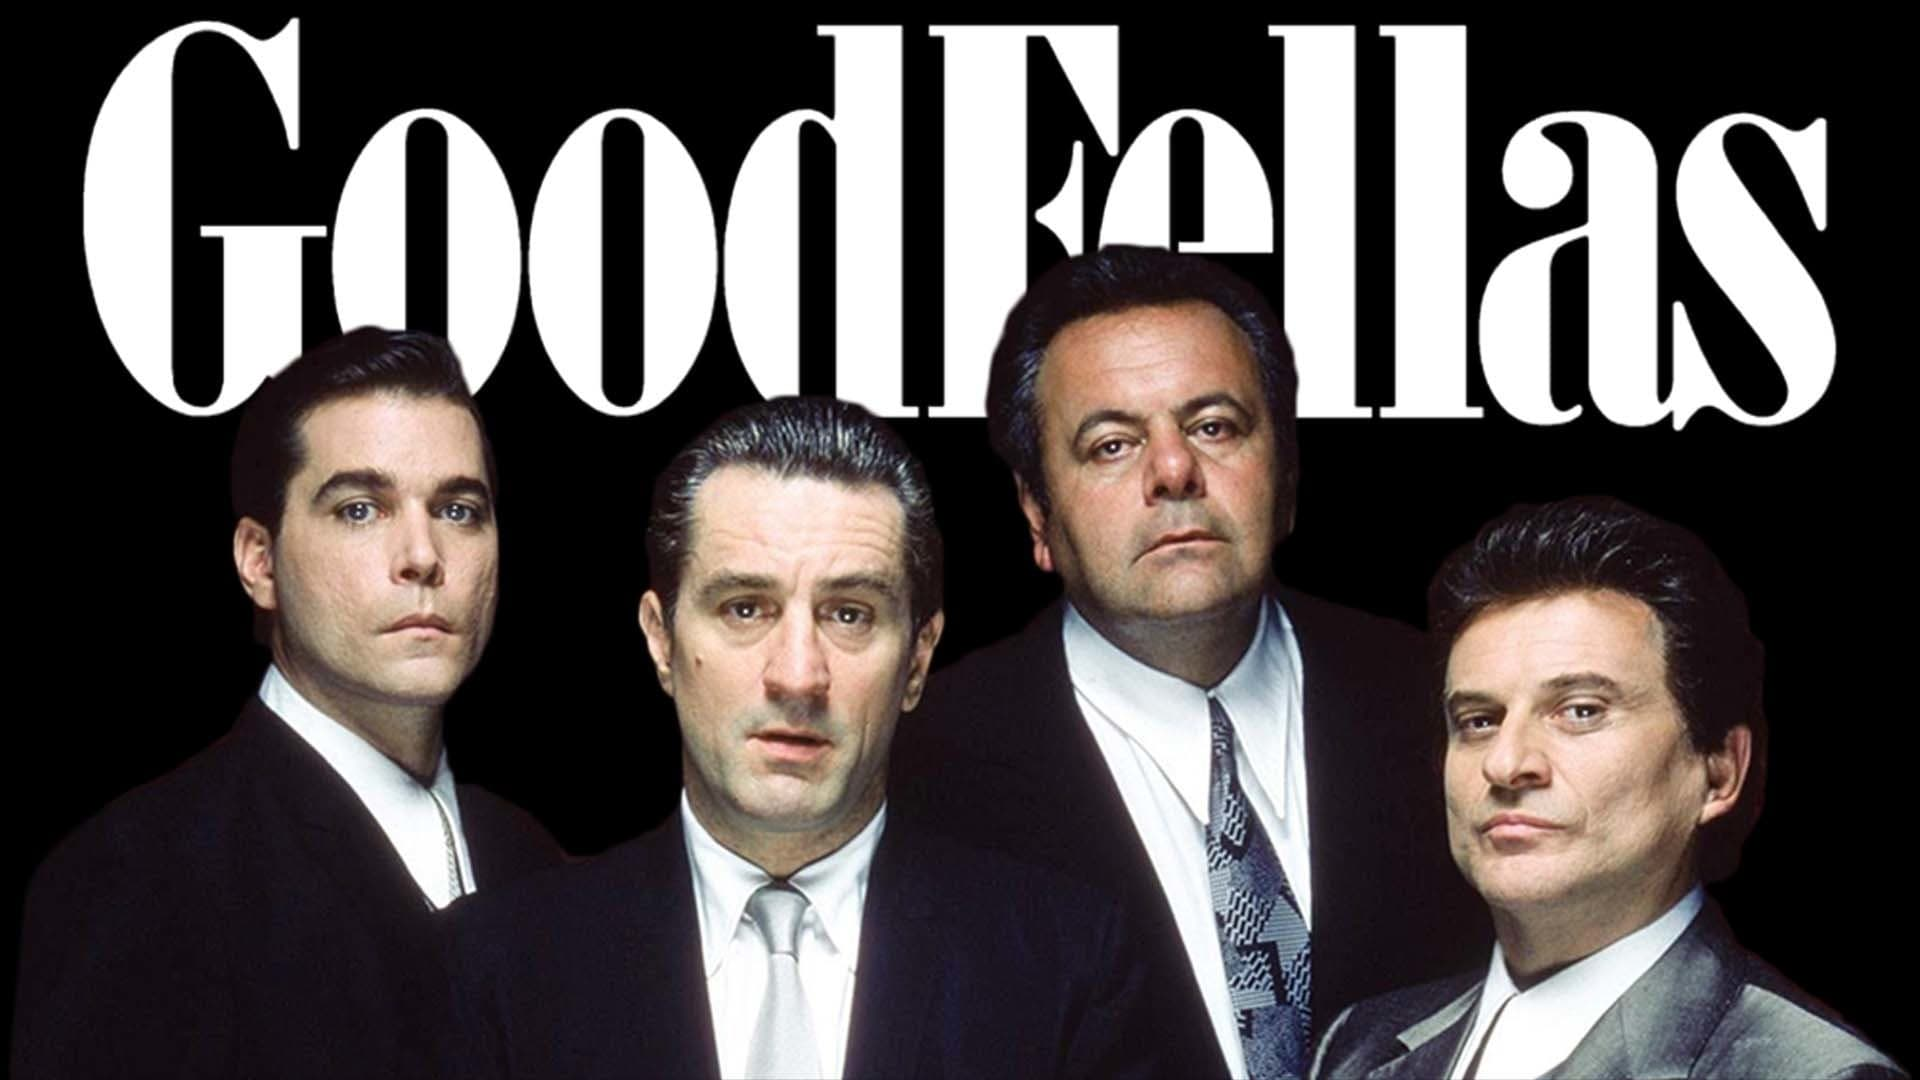 goodfellas stream